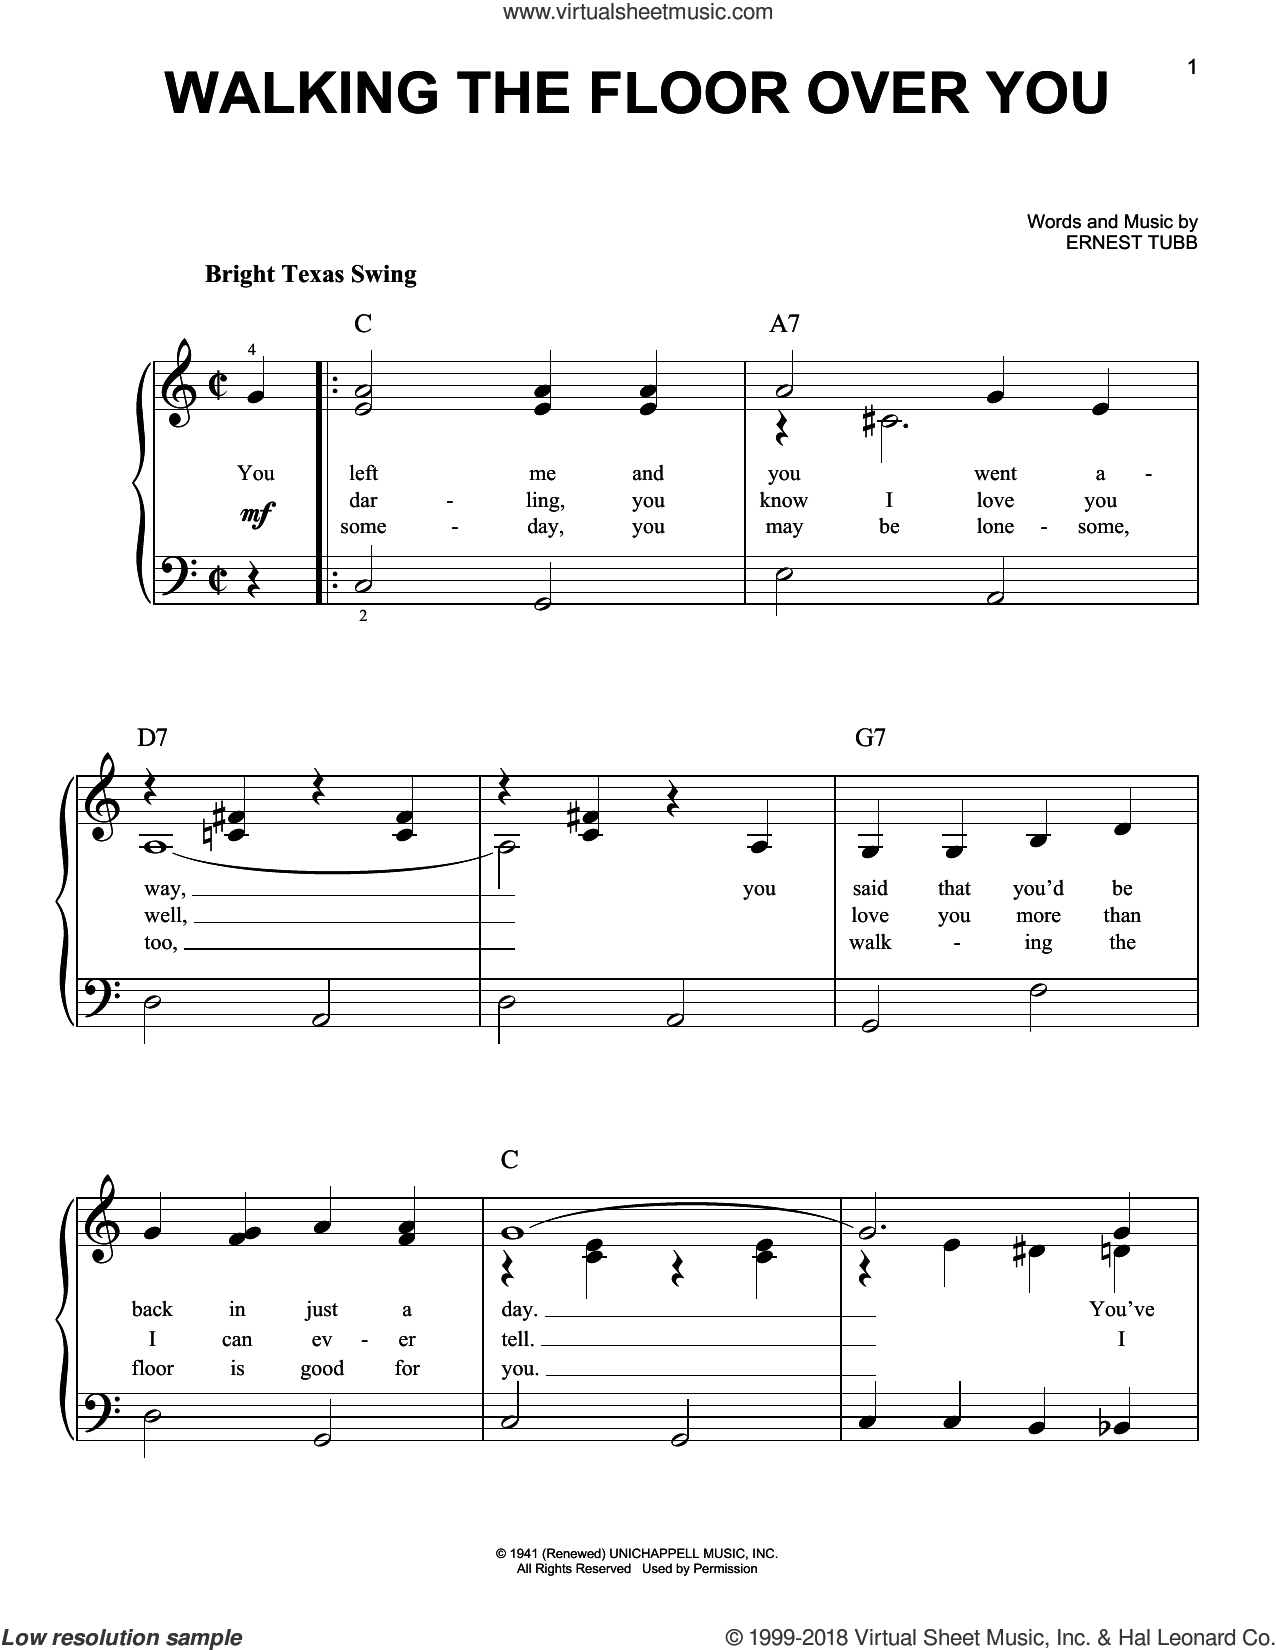 Walking The Floor Over You sheet music for piano solo (chords) by Ernest Tubb